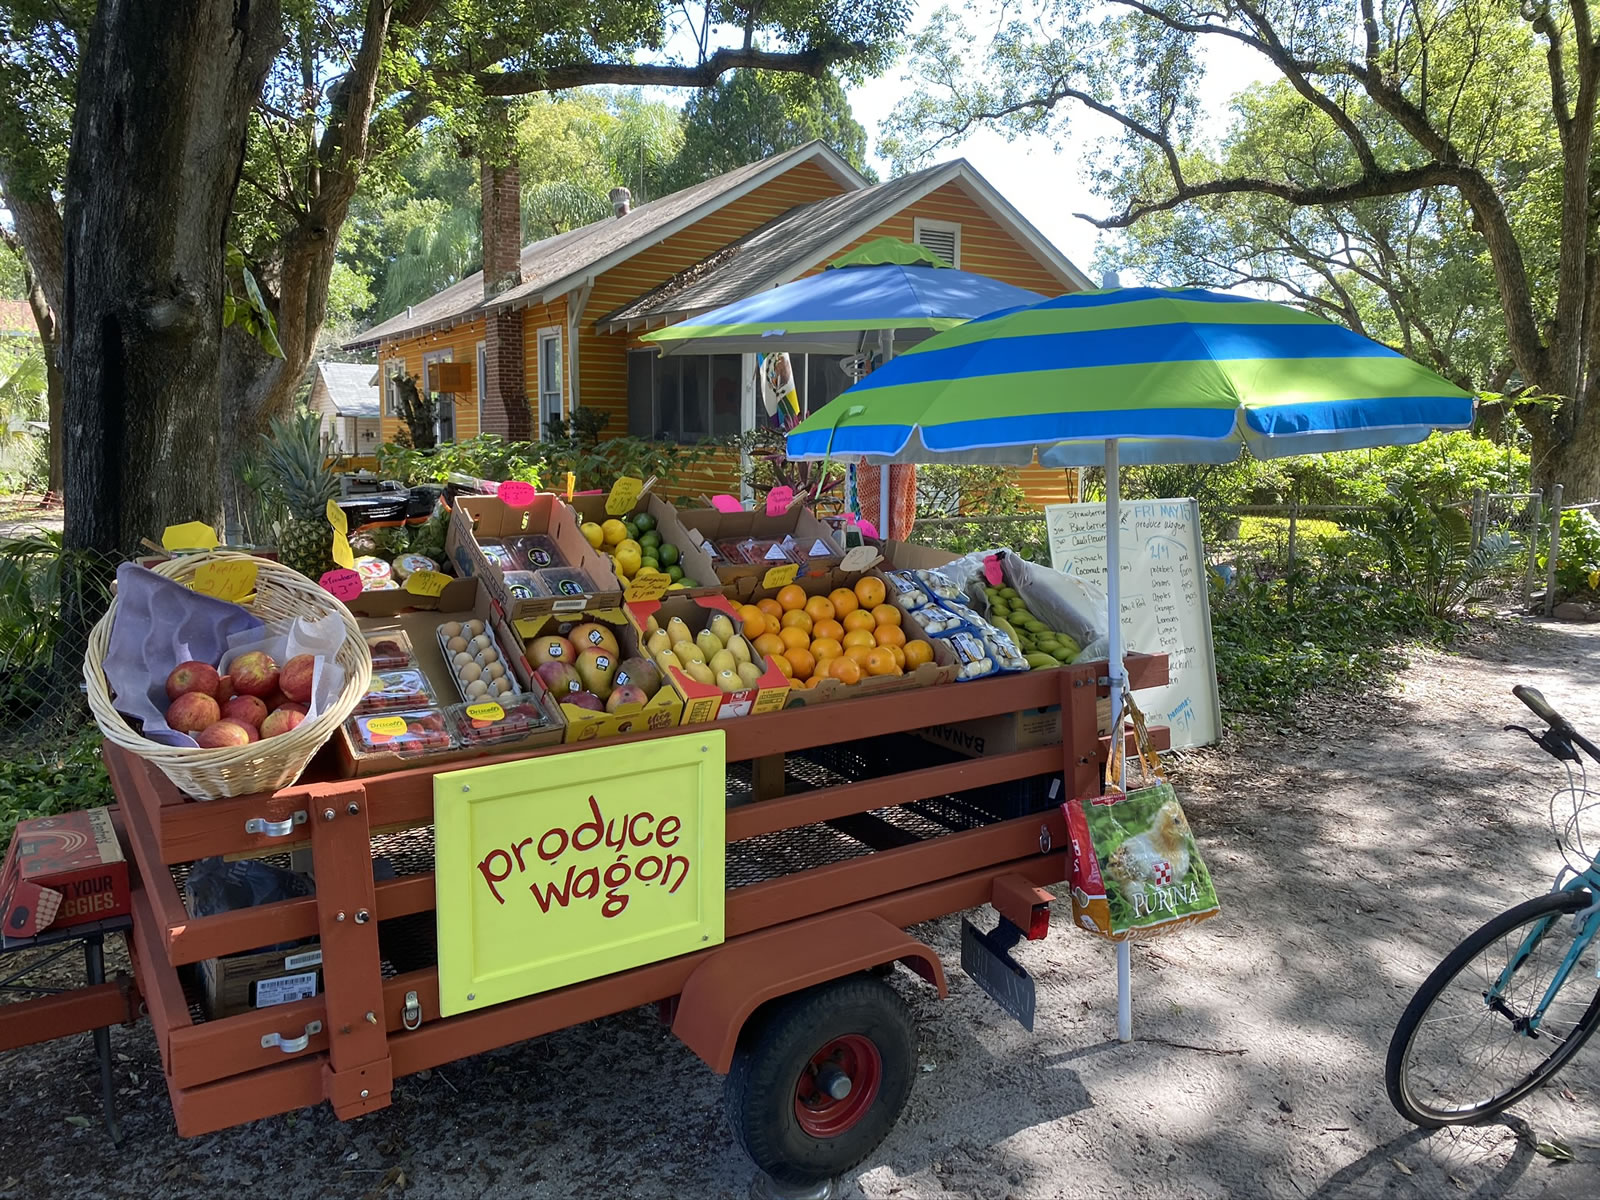 Closer-up photo of the Produce Wagon, showing its basket of apples, strawberries, eggs, mangoes, oranges, mushrooms, and bananas.